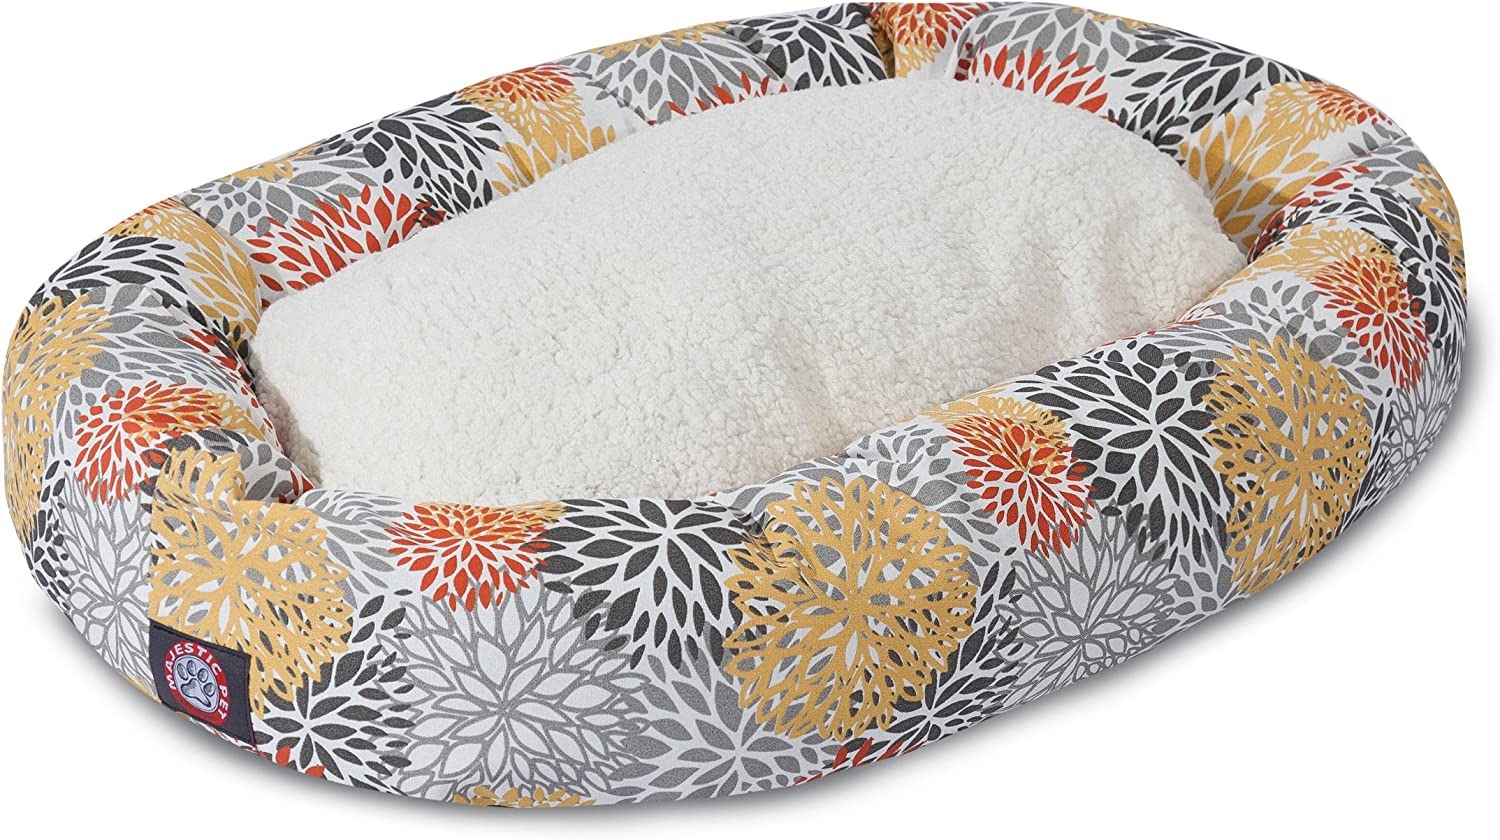 Majestic Pet Products Citrus Blooms Sherpa Bagel Dog Bed